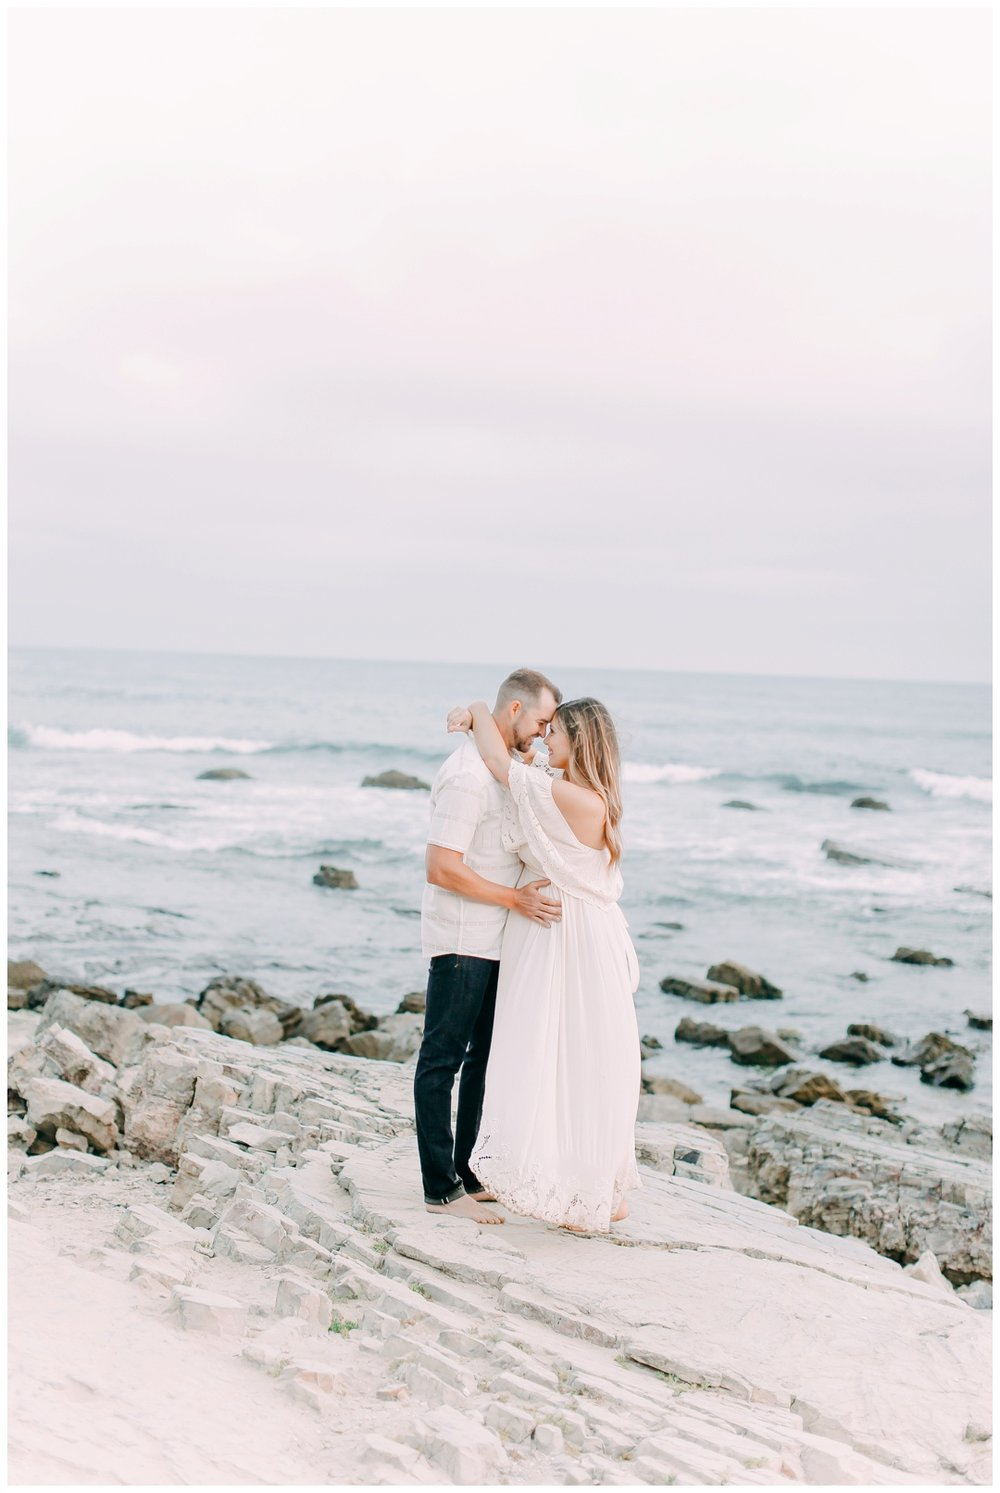 Newport_Beach_Maternity_Photographer_Beach_Maternity_Photography_Cori_Kleckner_Photography_1029.jpg